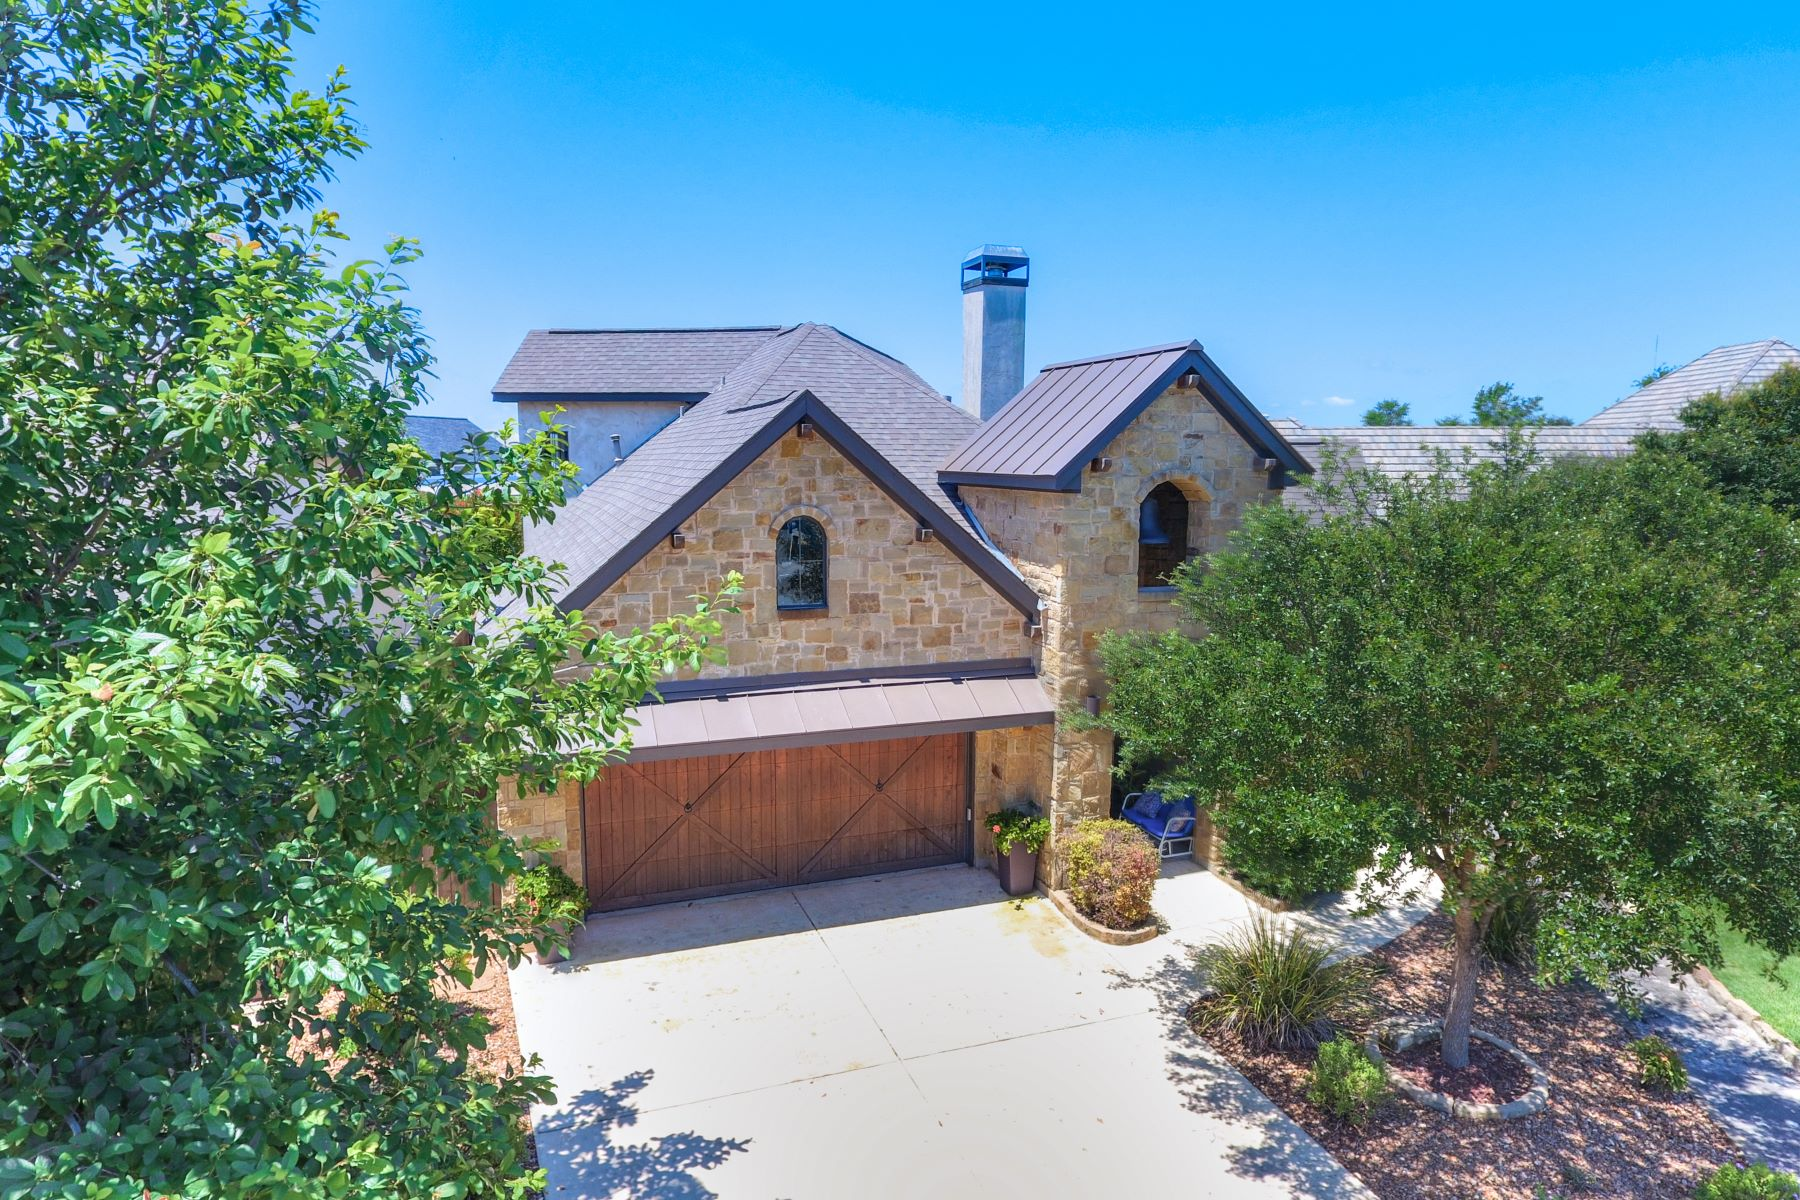 Single Family Homes for Sale at Beautifully Finished in Historic Gruene With River Access 1304 Gruene Leaf Drive New Braunfels, Texas 78130 United States